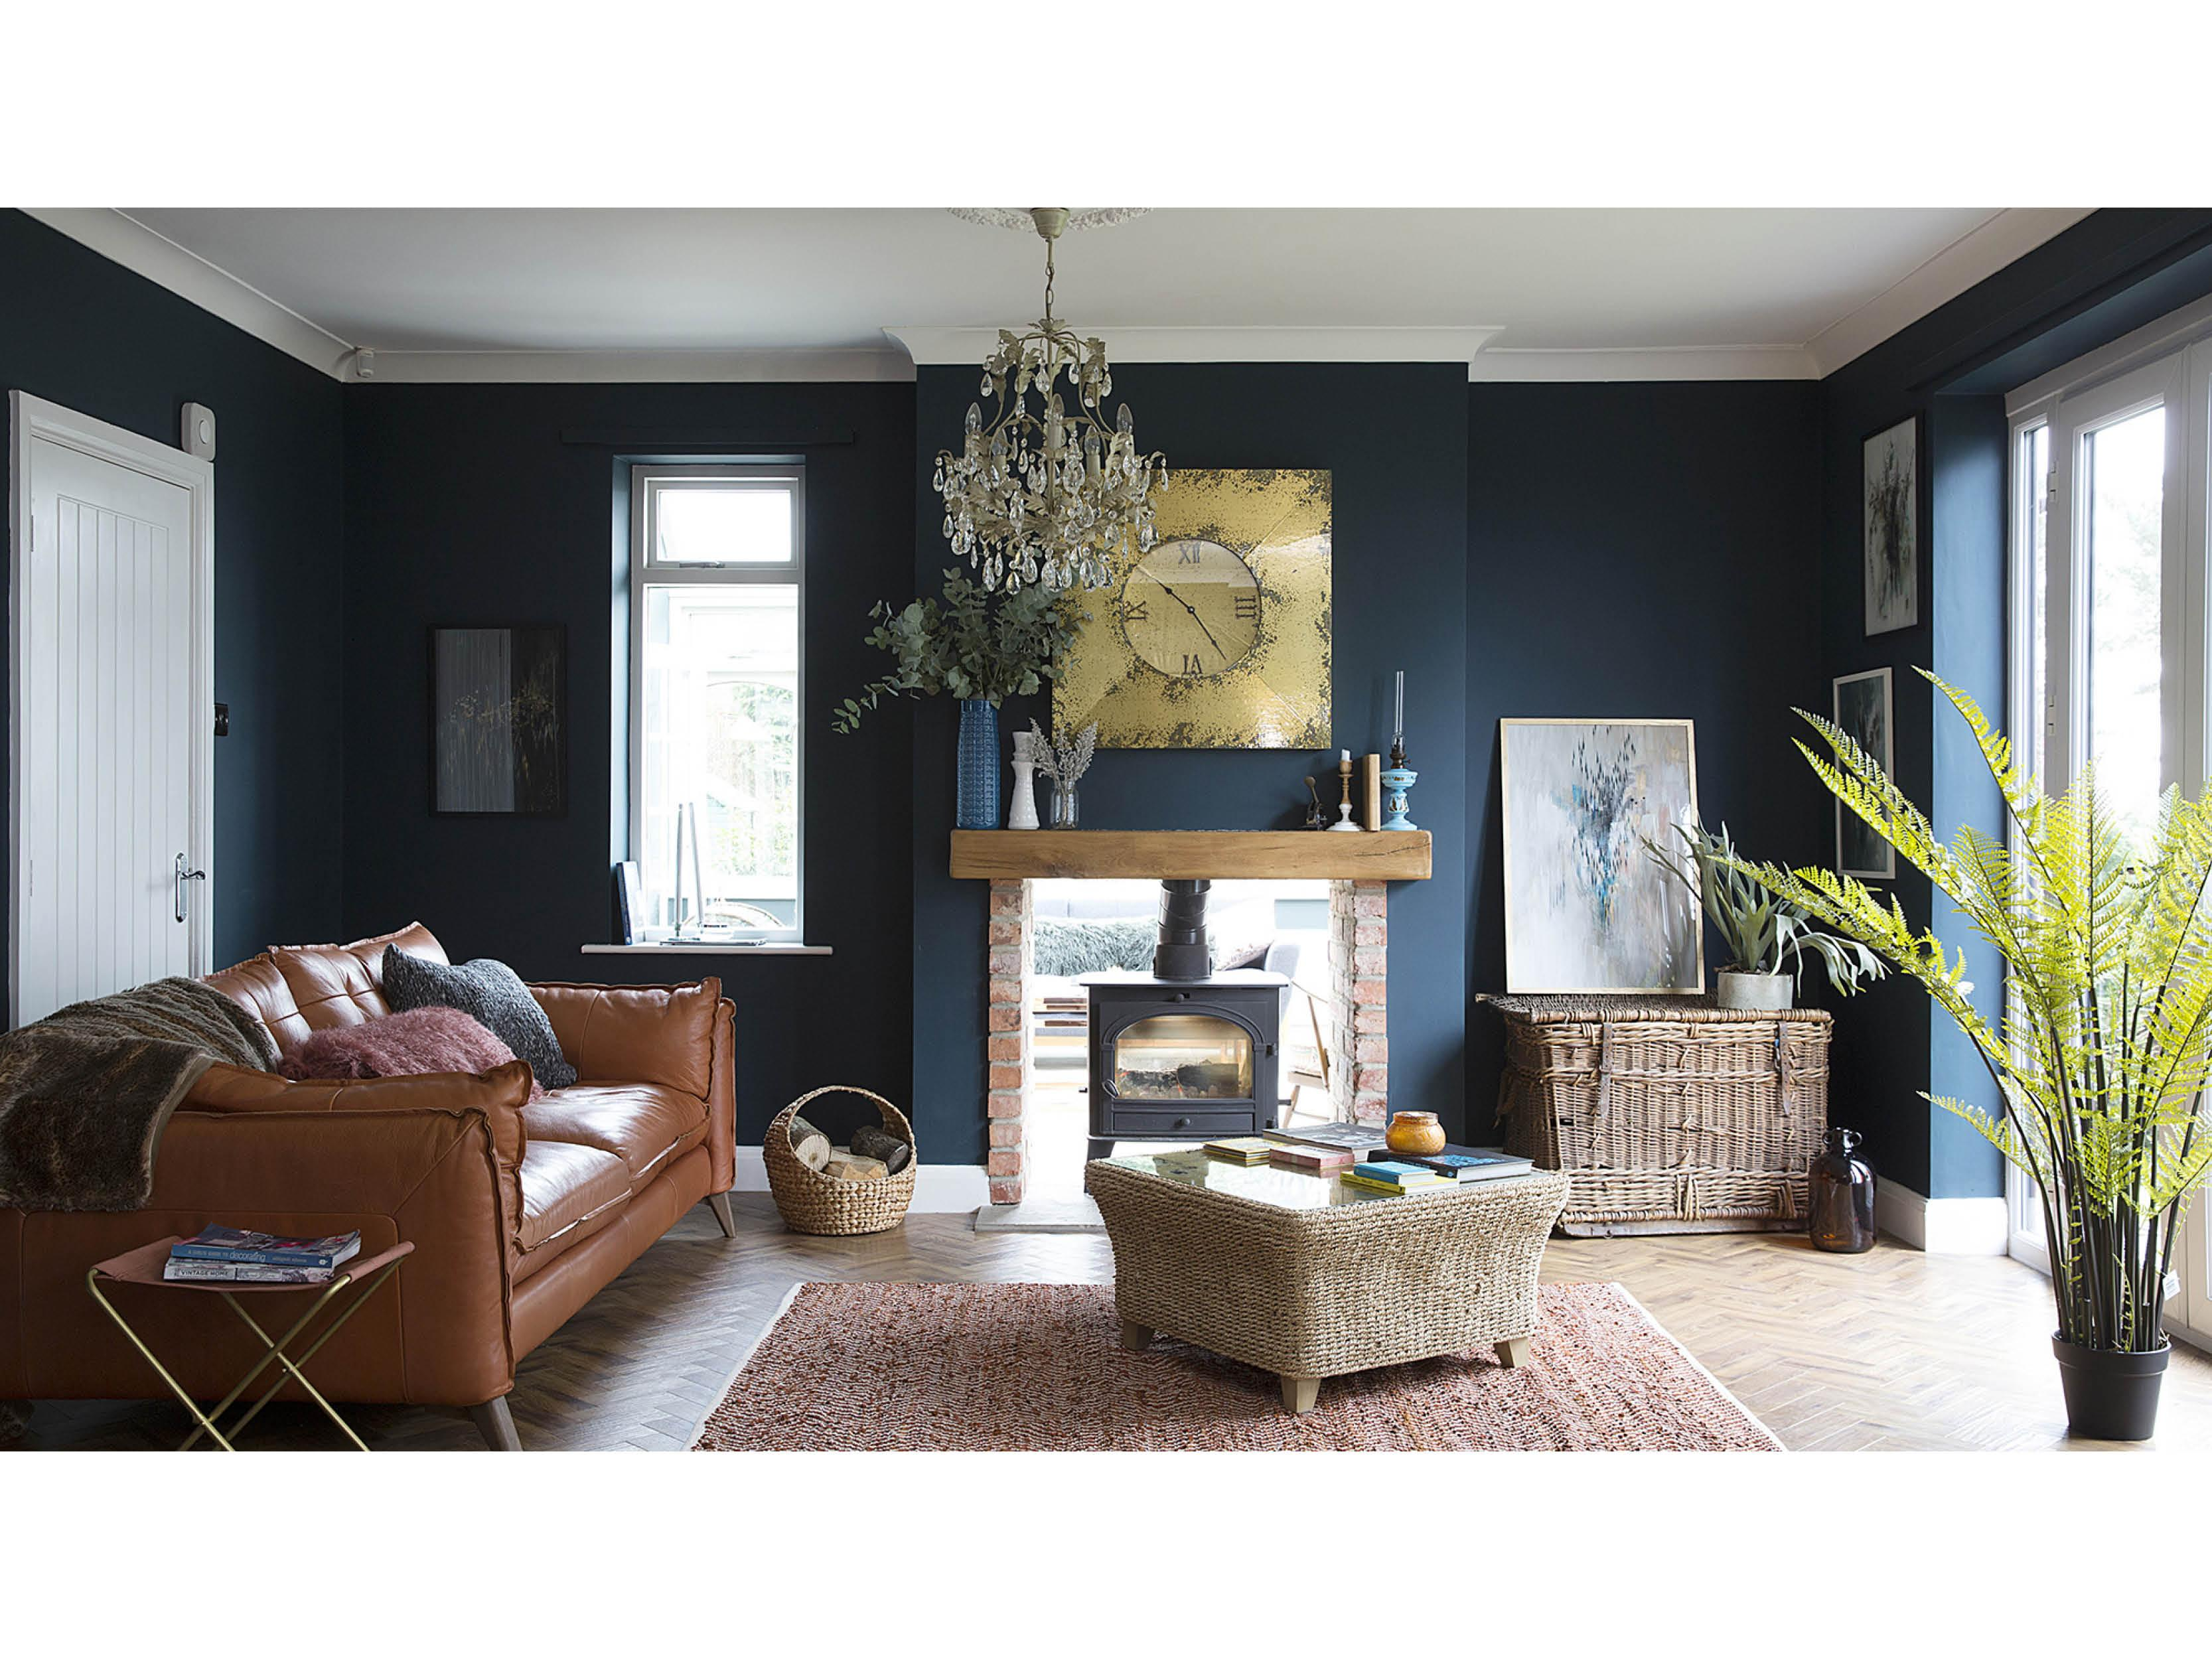 Paint It Black: Living Room Feature Wall (Image via Pinterest)